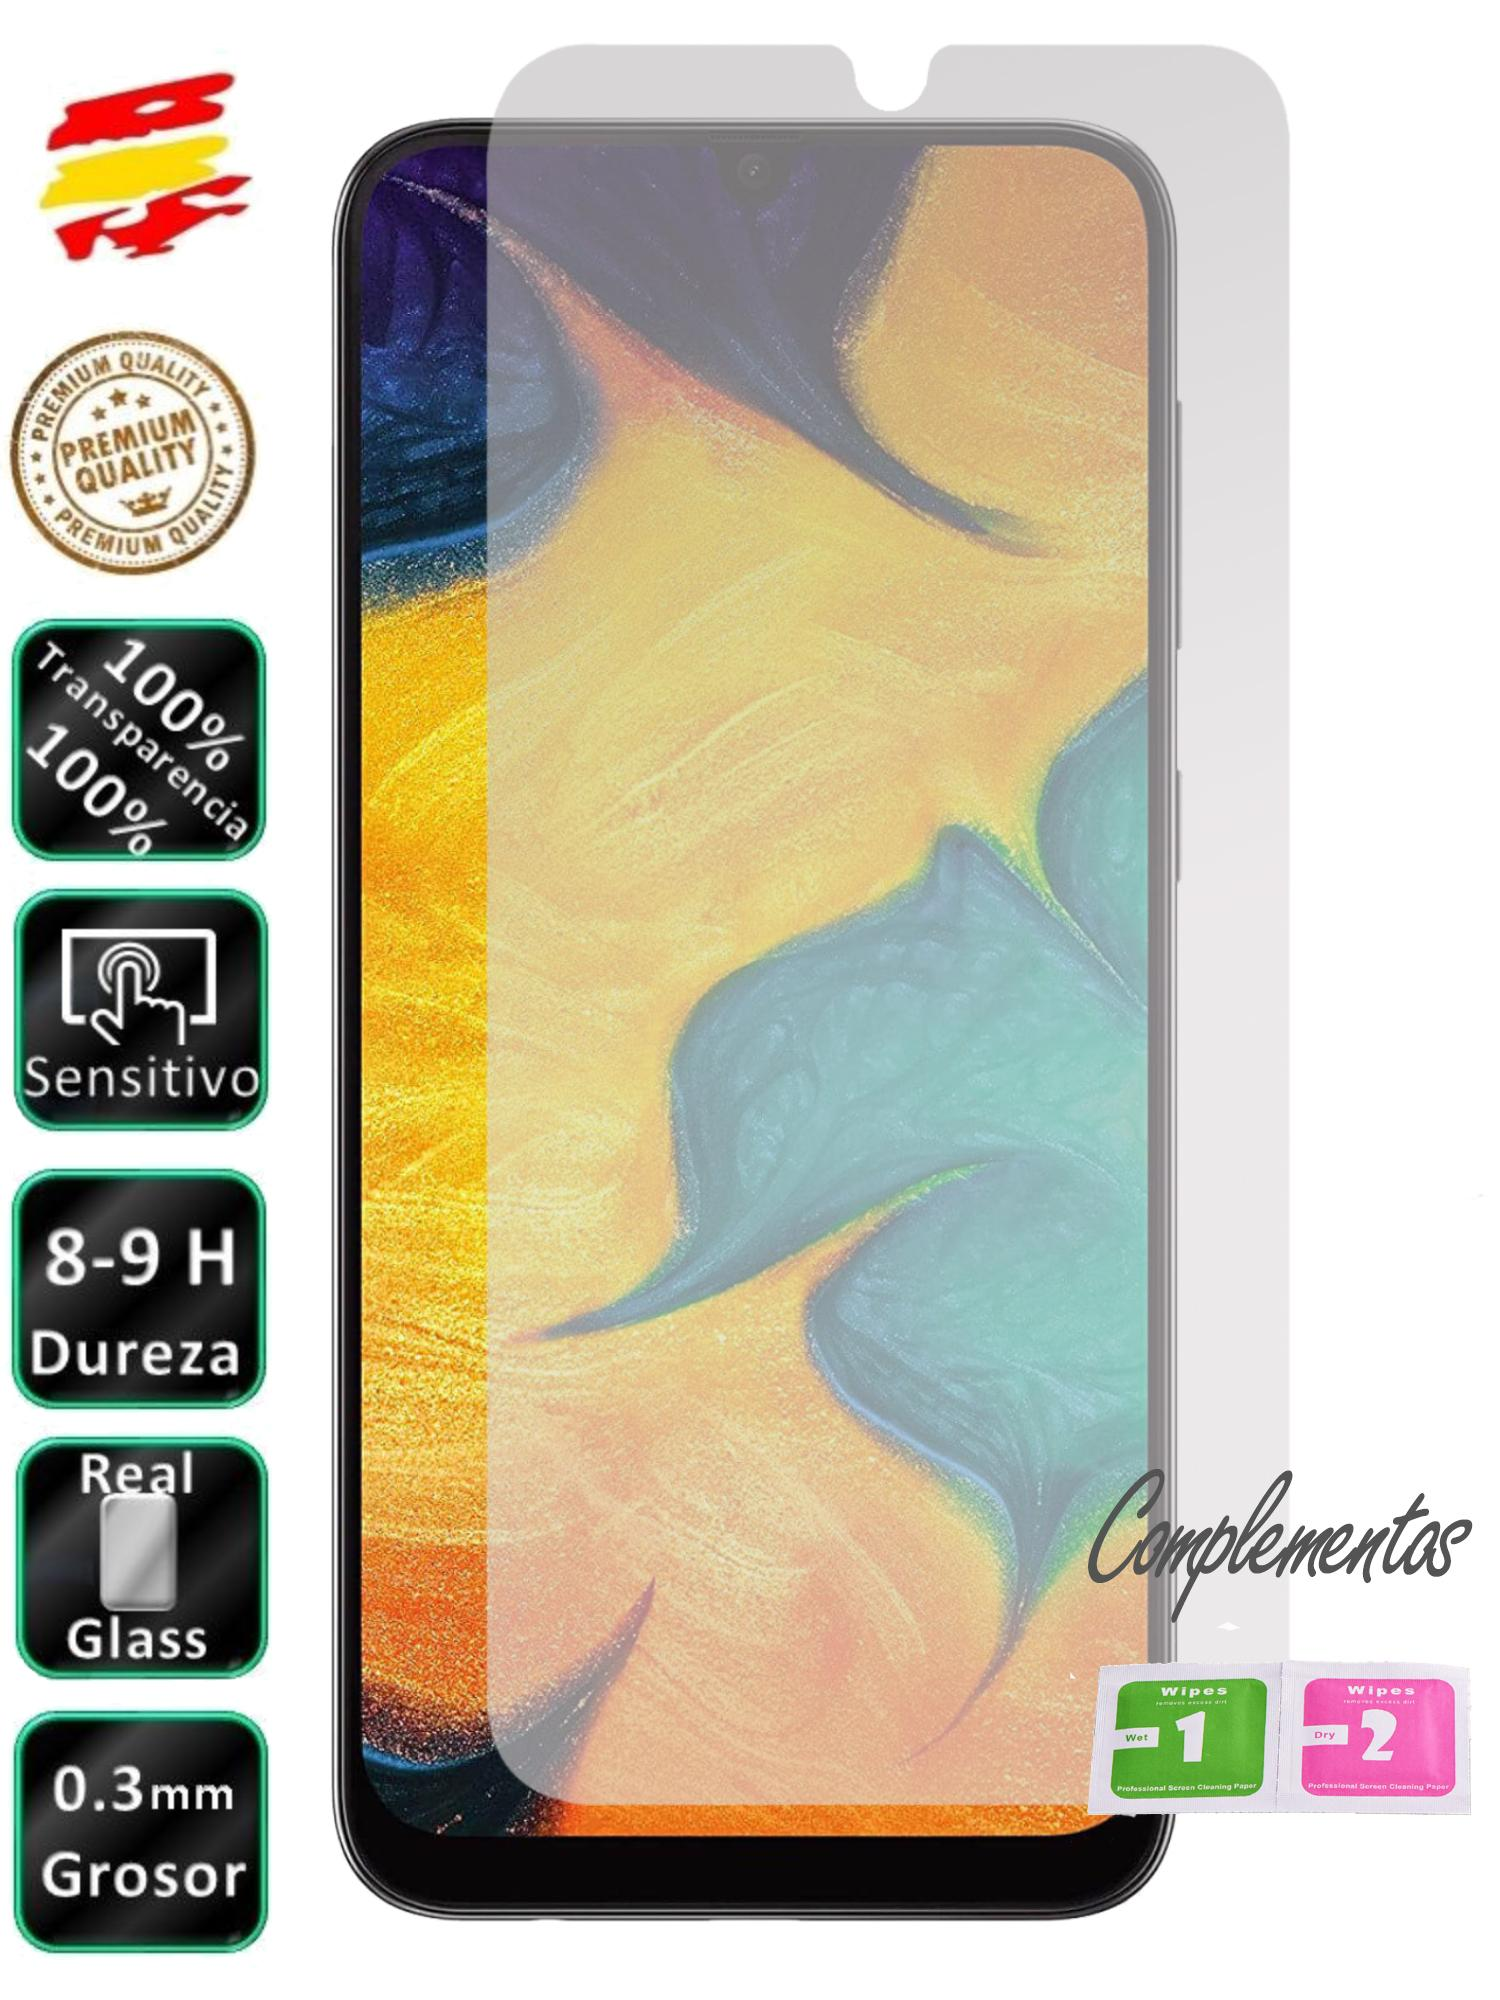 Protector Samsung Galaxy A10 A20e A30s A40 A50 A70 A80 2019 Tempered Glass Vidrio Screen Mobile